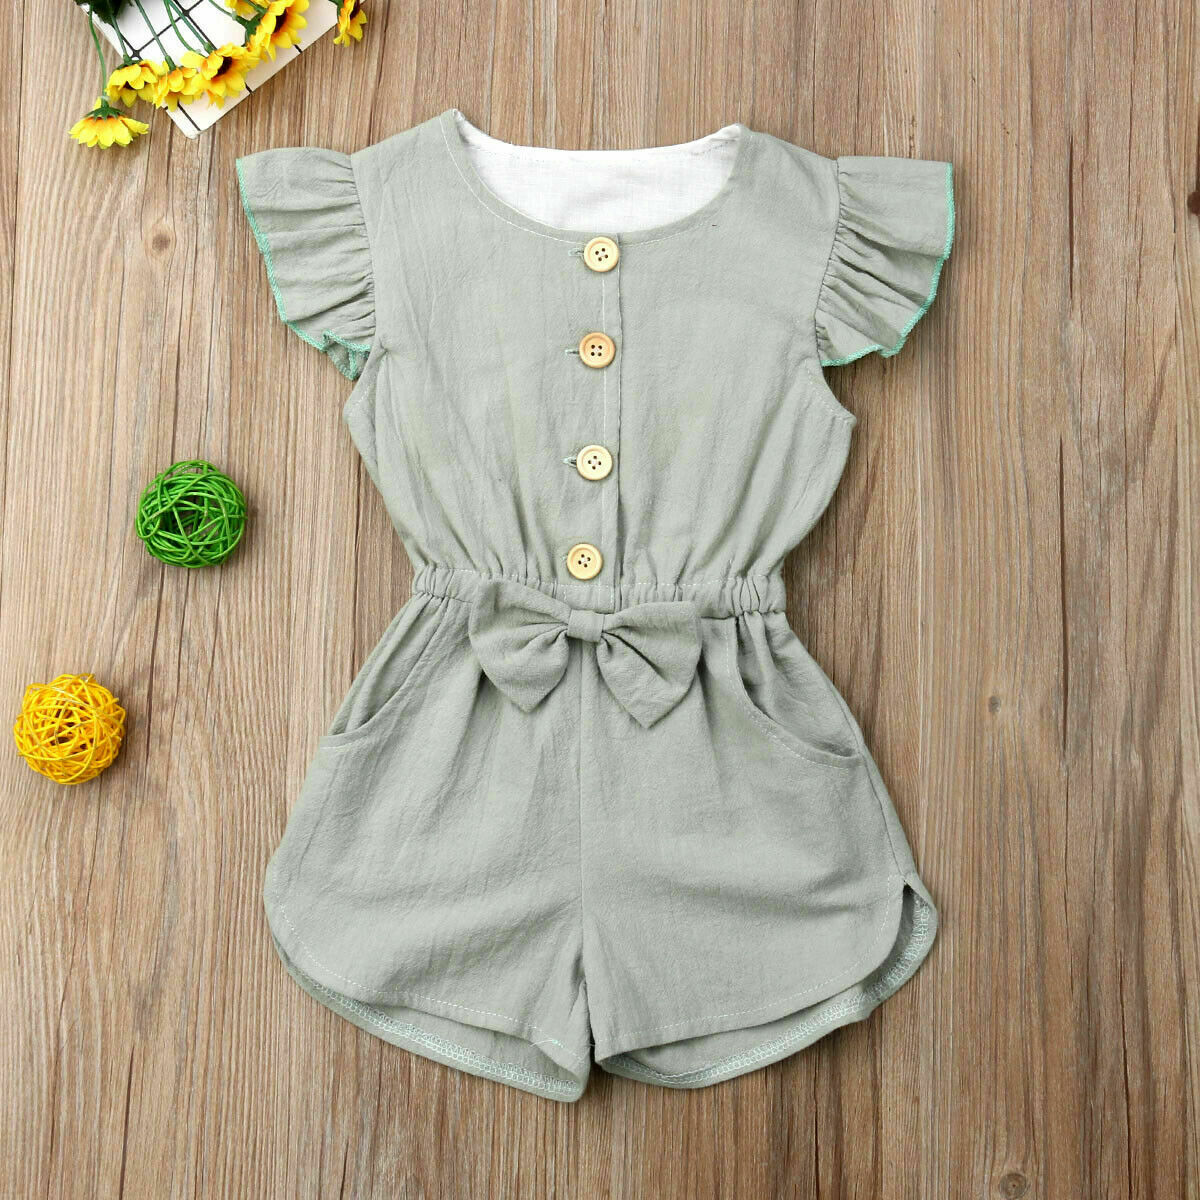 Hot Girls Fly Two-tone Sleeve   Romper   Jumpsuit 2019 Summer Toddler Kids Baby Clothes Sunsuit Outfits